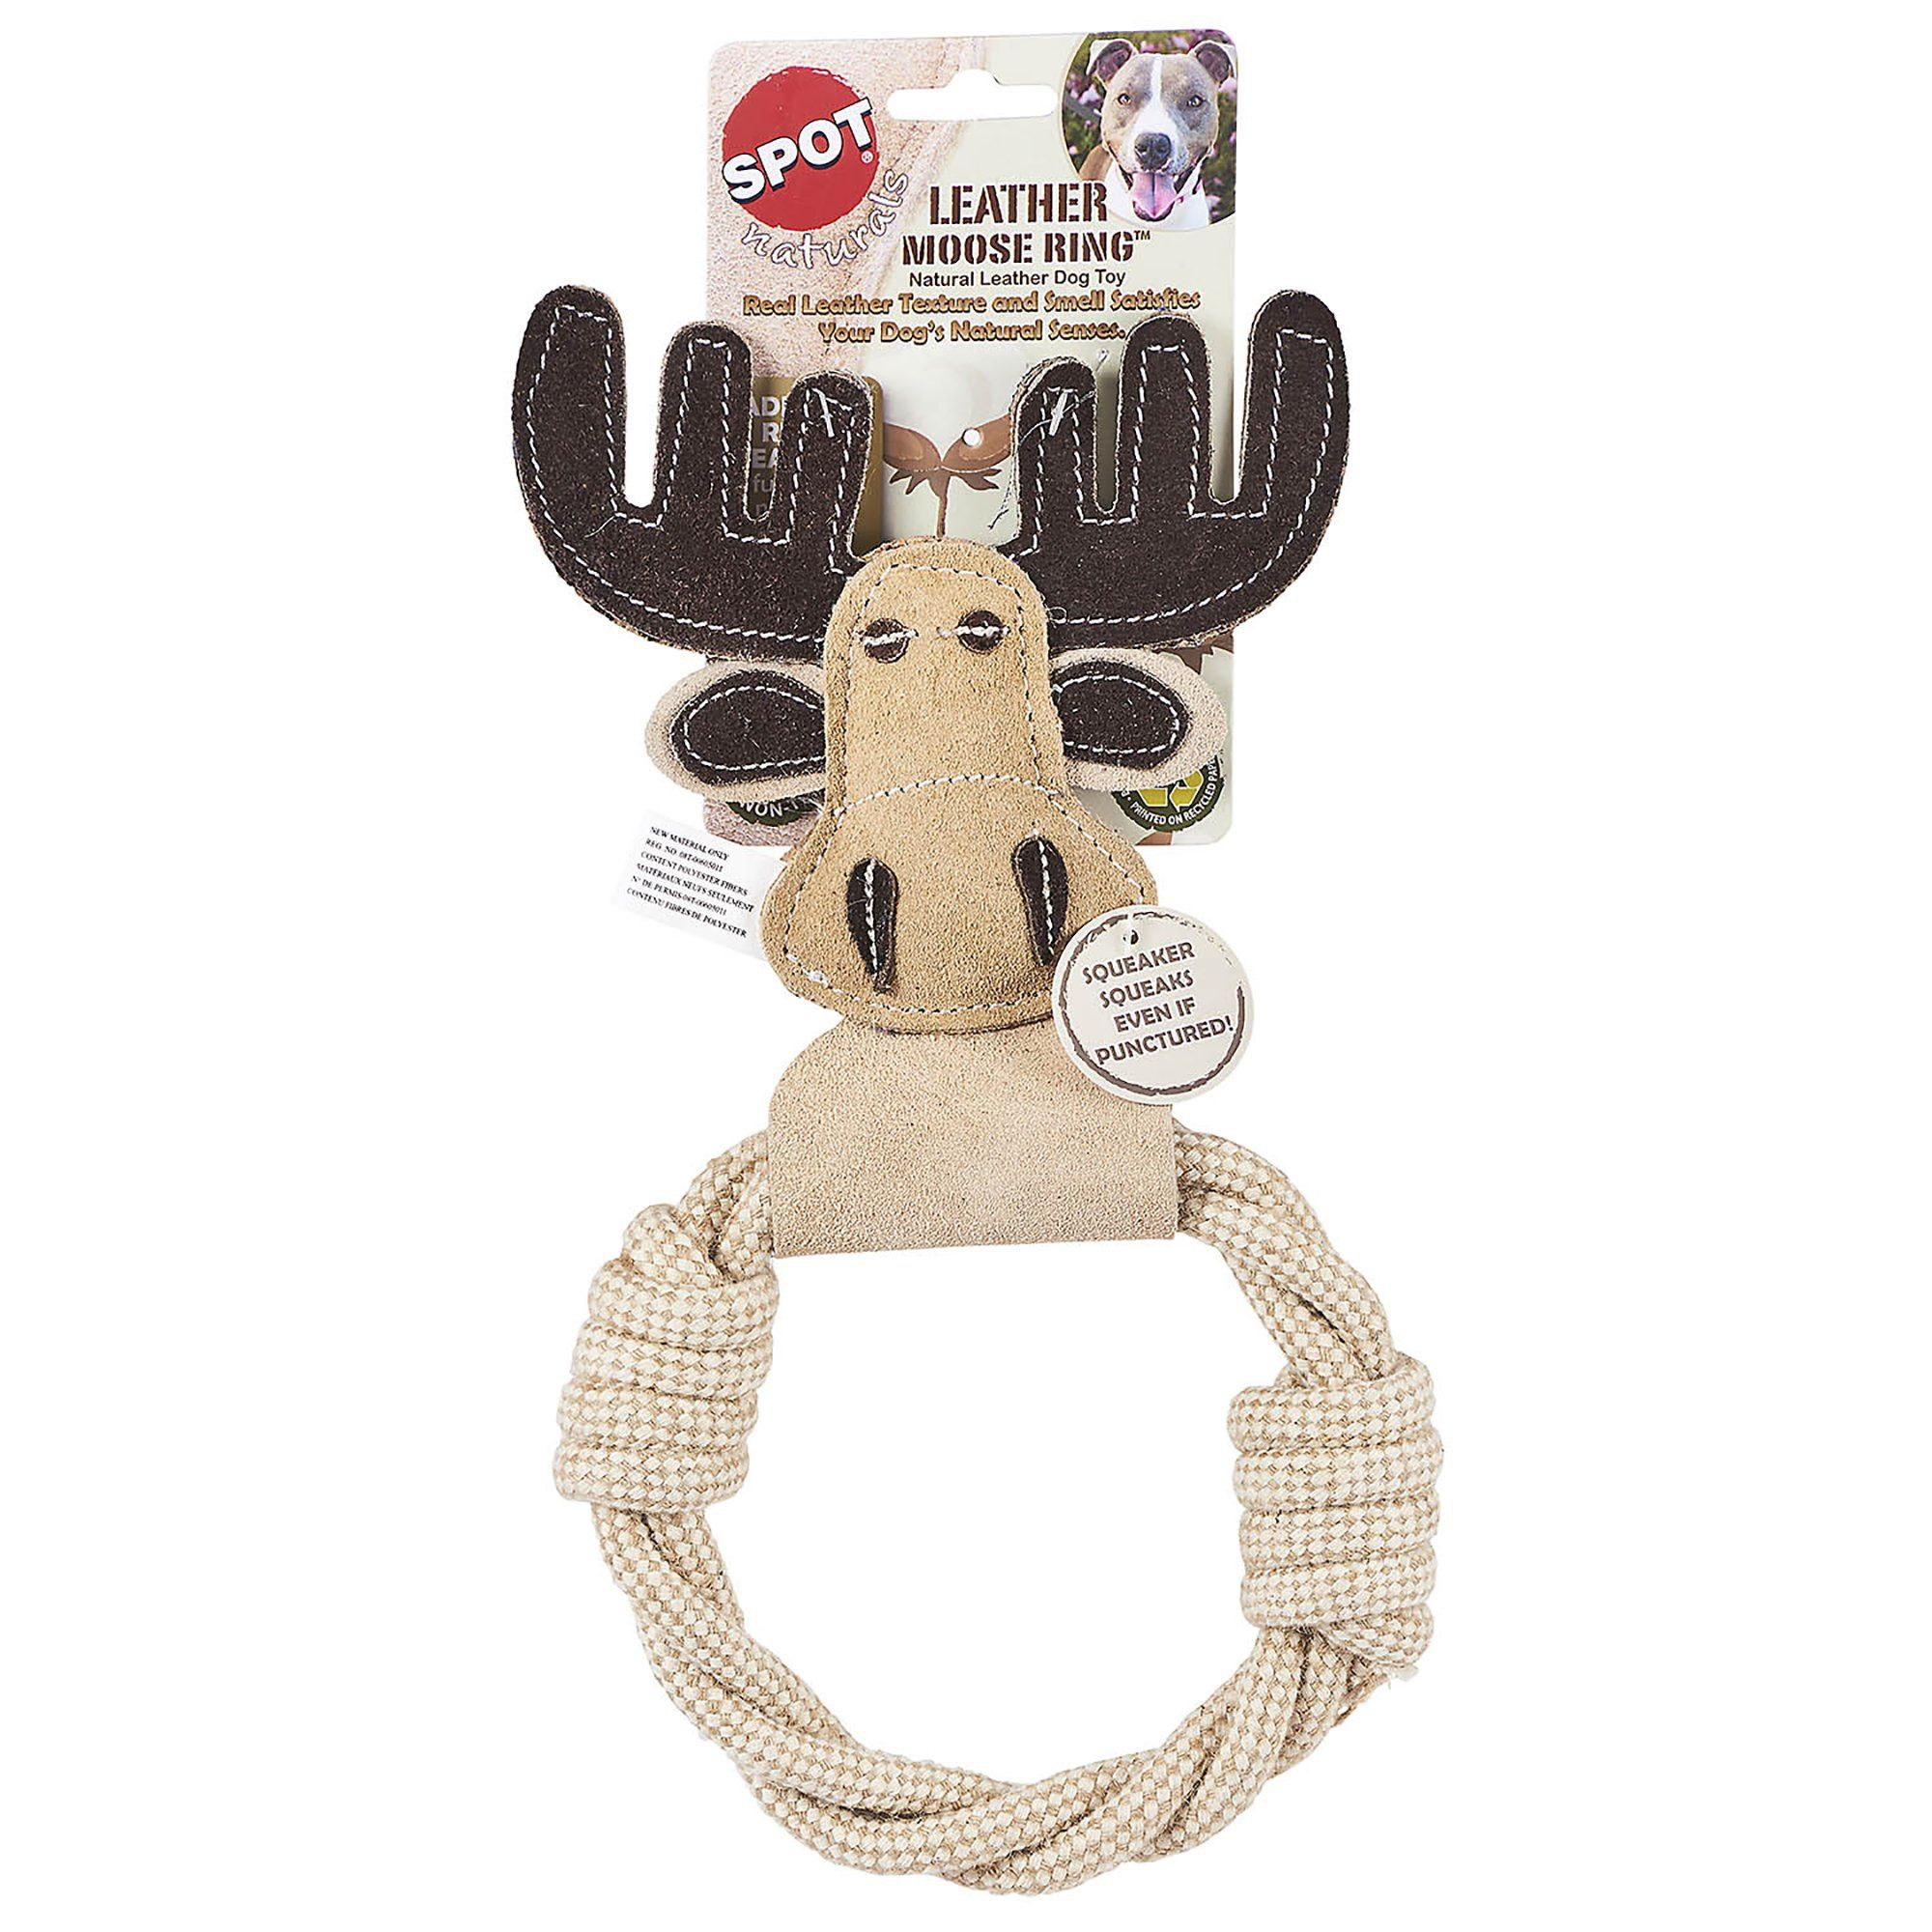 Spot Naturals Leather Moose Ring Dog Chew Toy Large Dog Chew